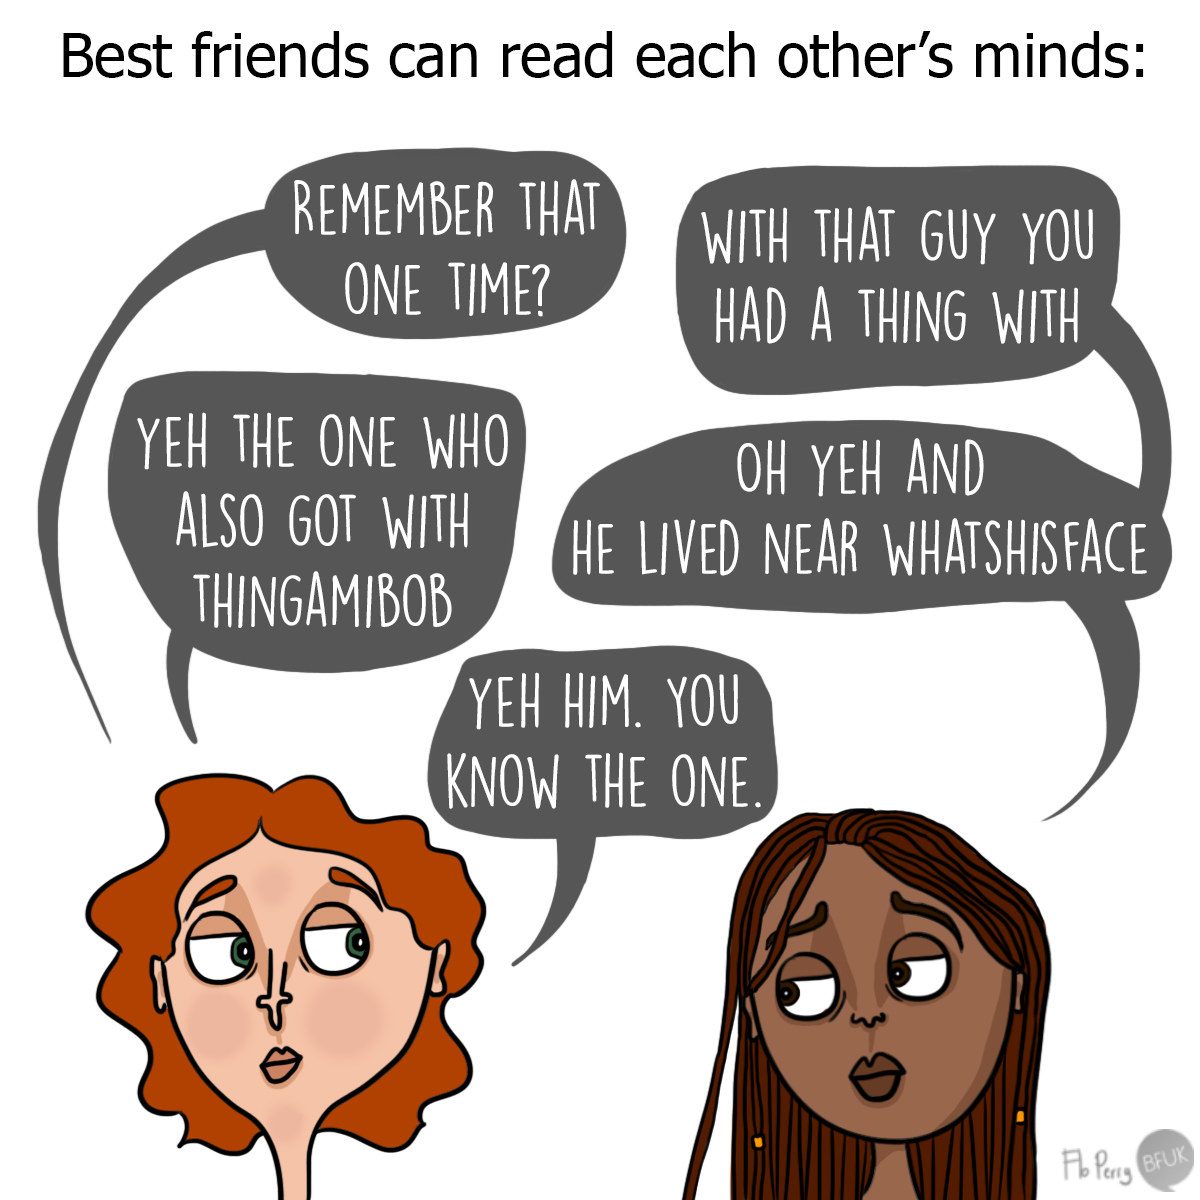 Funny Quotes To Send To Your Friends: 18 Funny, Cute, And Real AF Memes To Send Your BFF Immediately